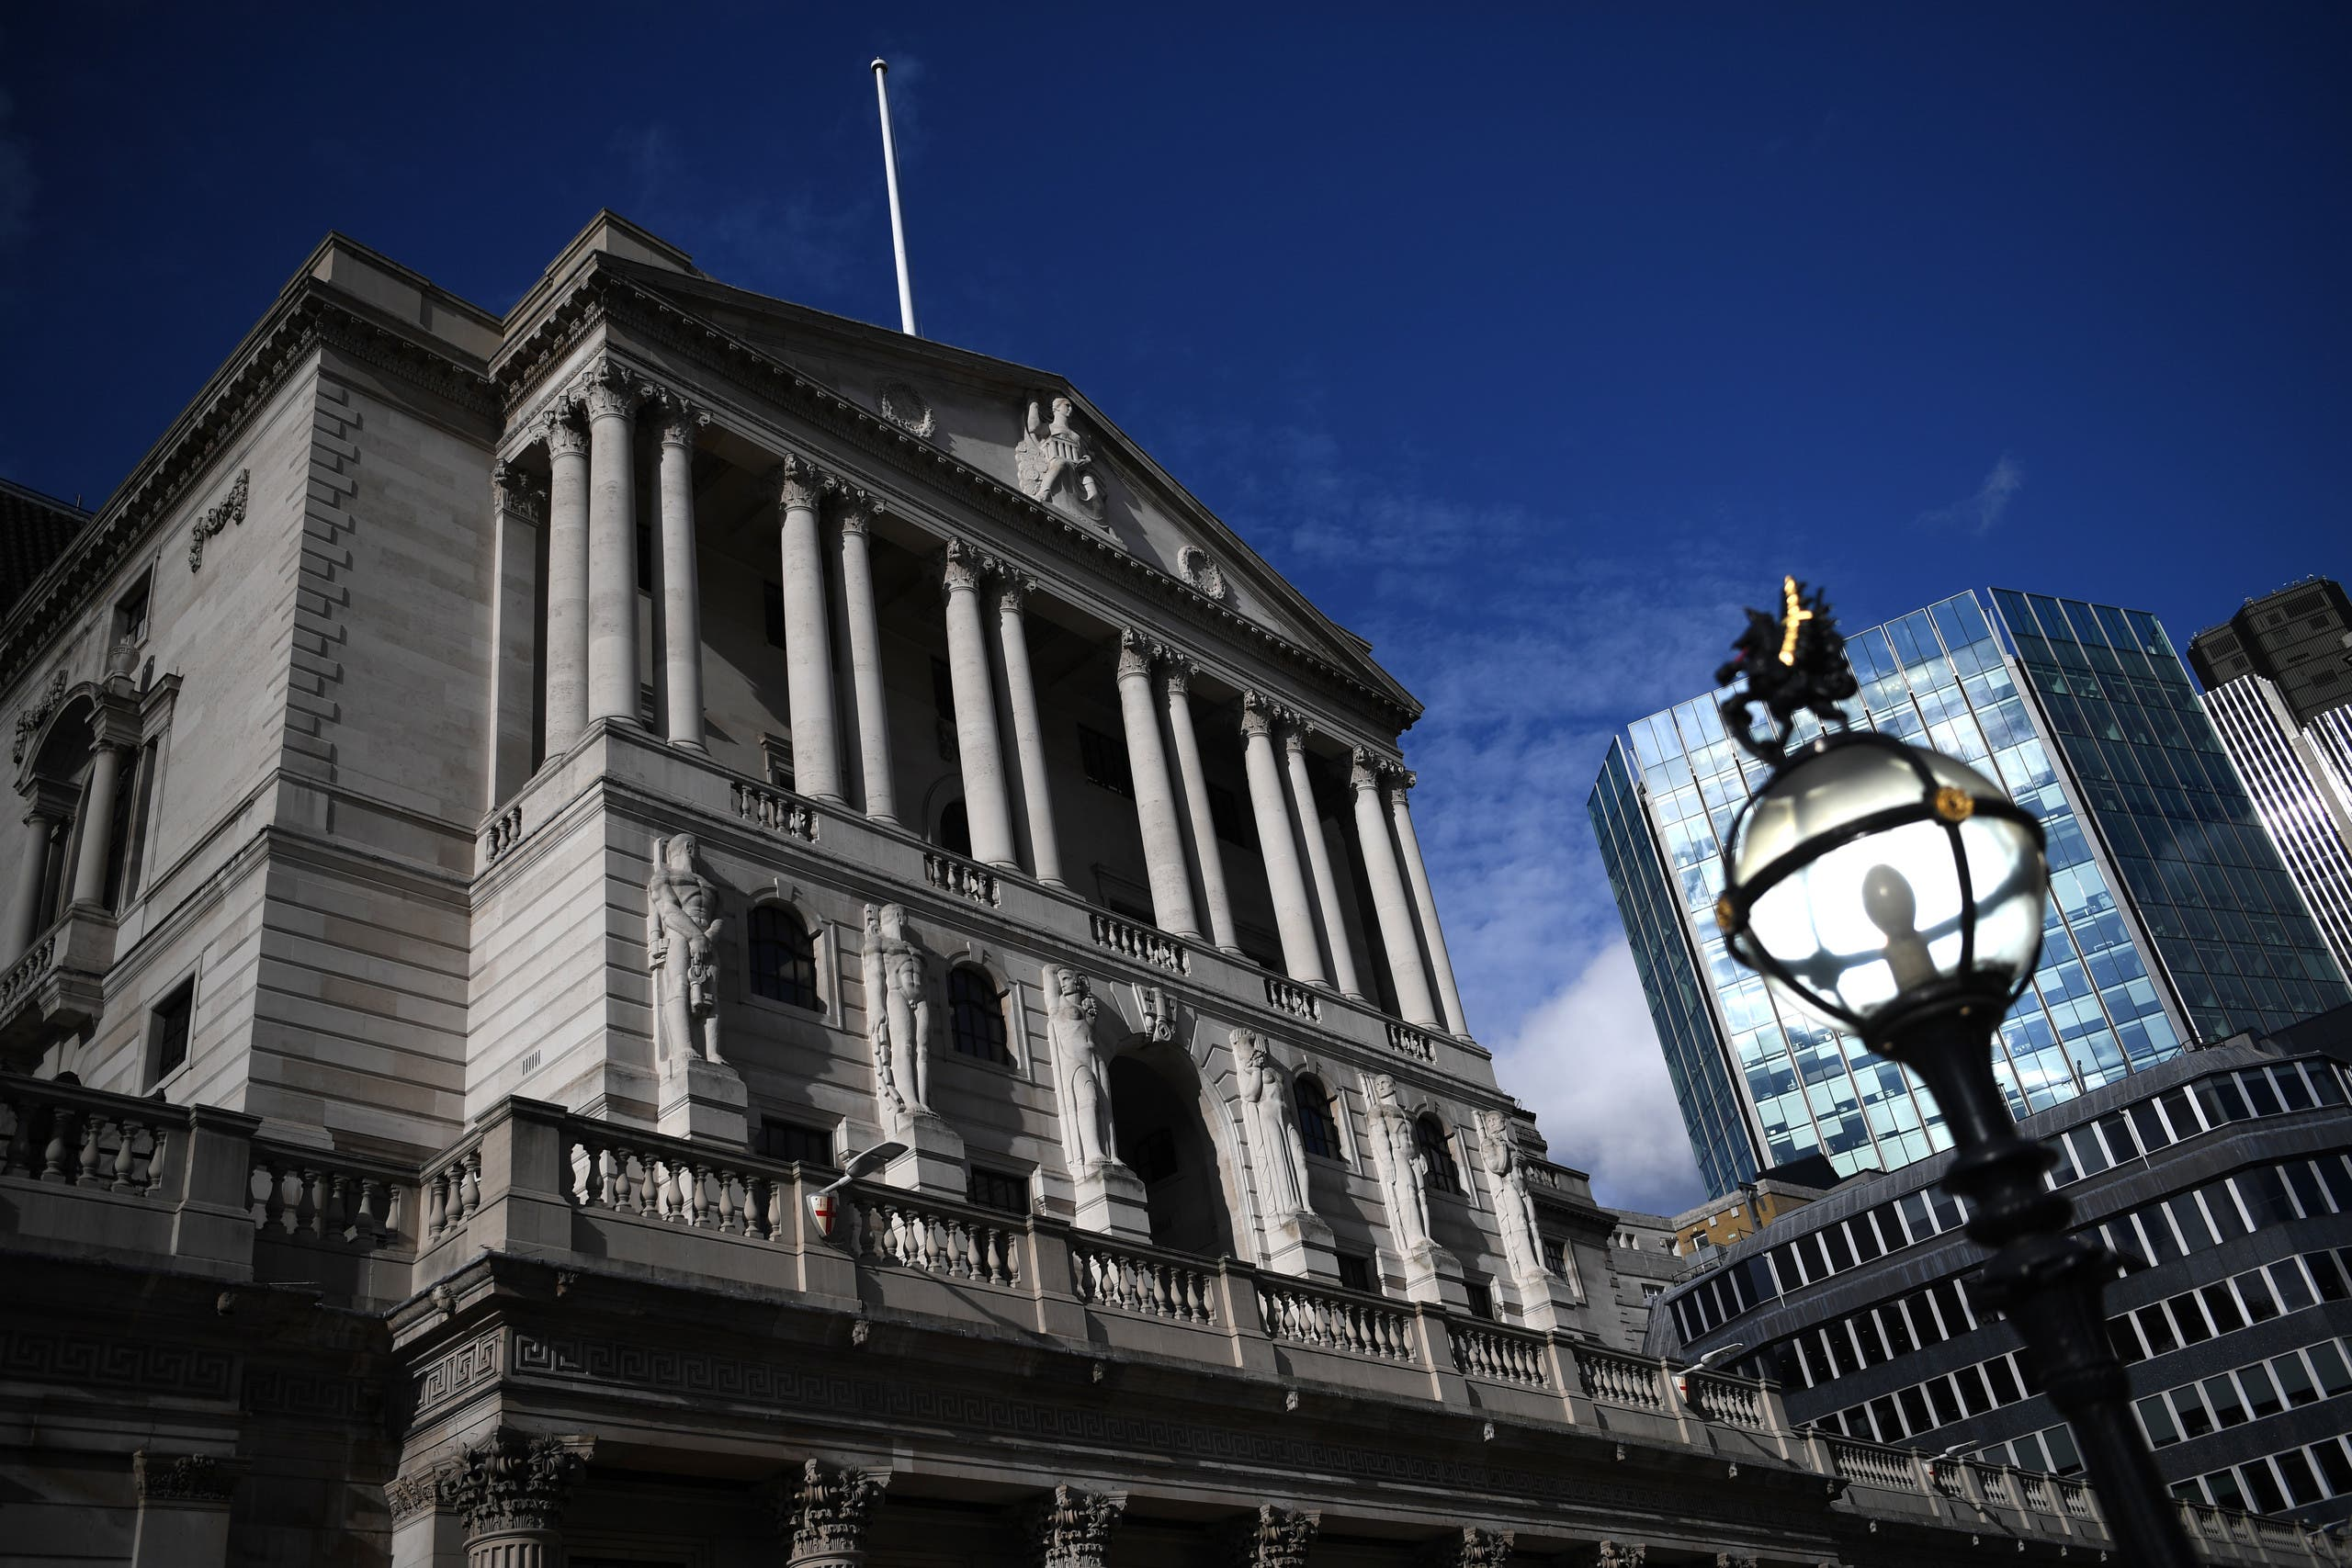 The Bank of England is pictured in London on March 11, 2020. (AFP)